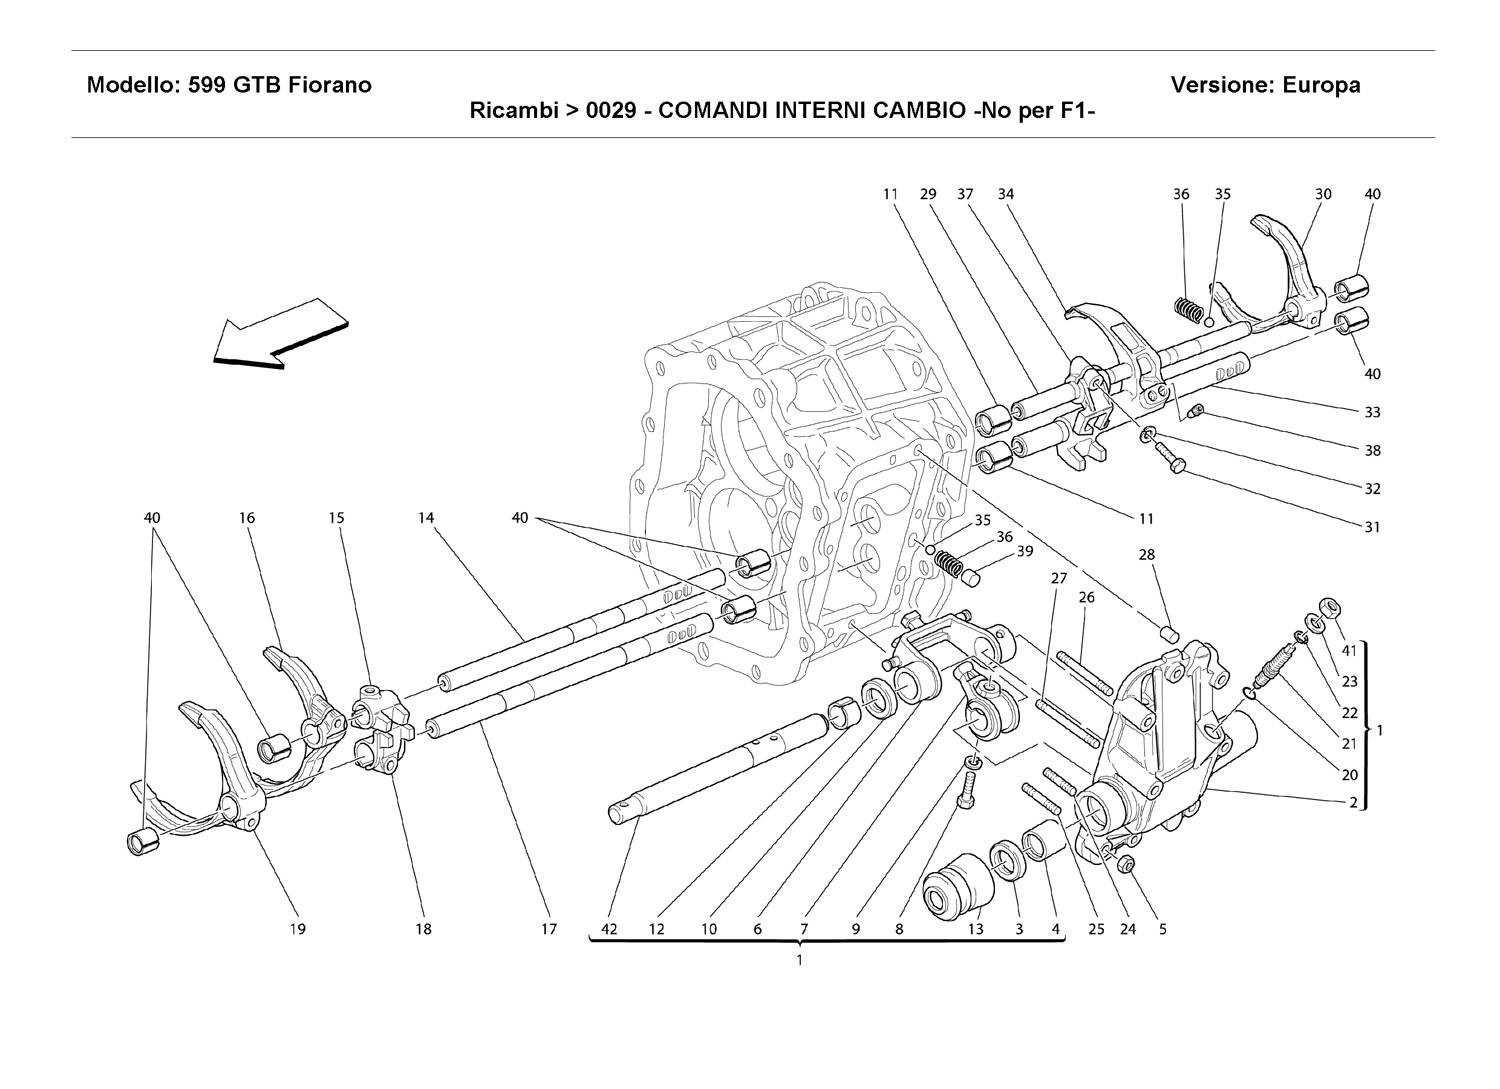 INSIDE GEARBOX CONTROLS -Not for F1 -